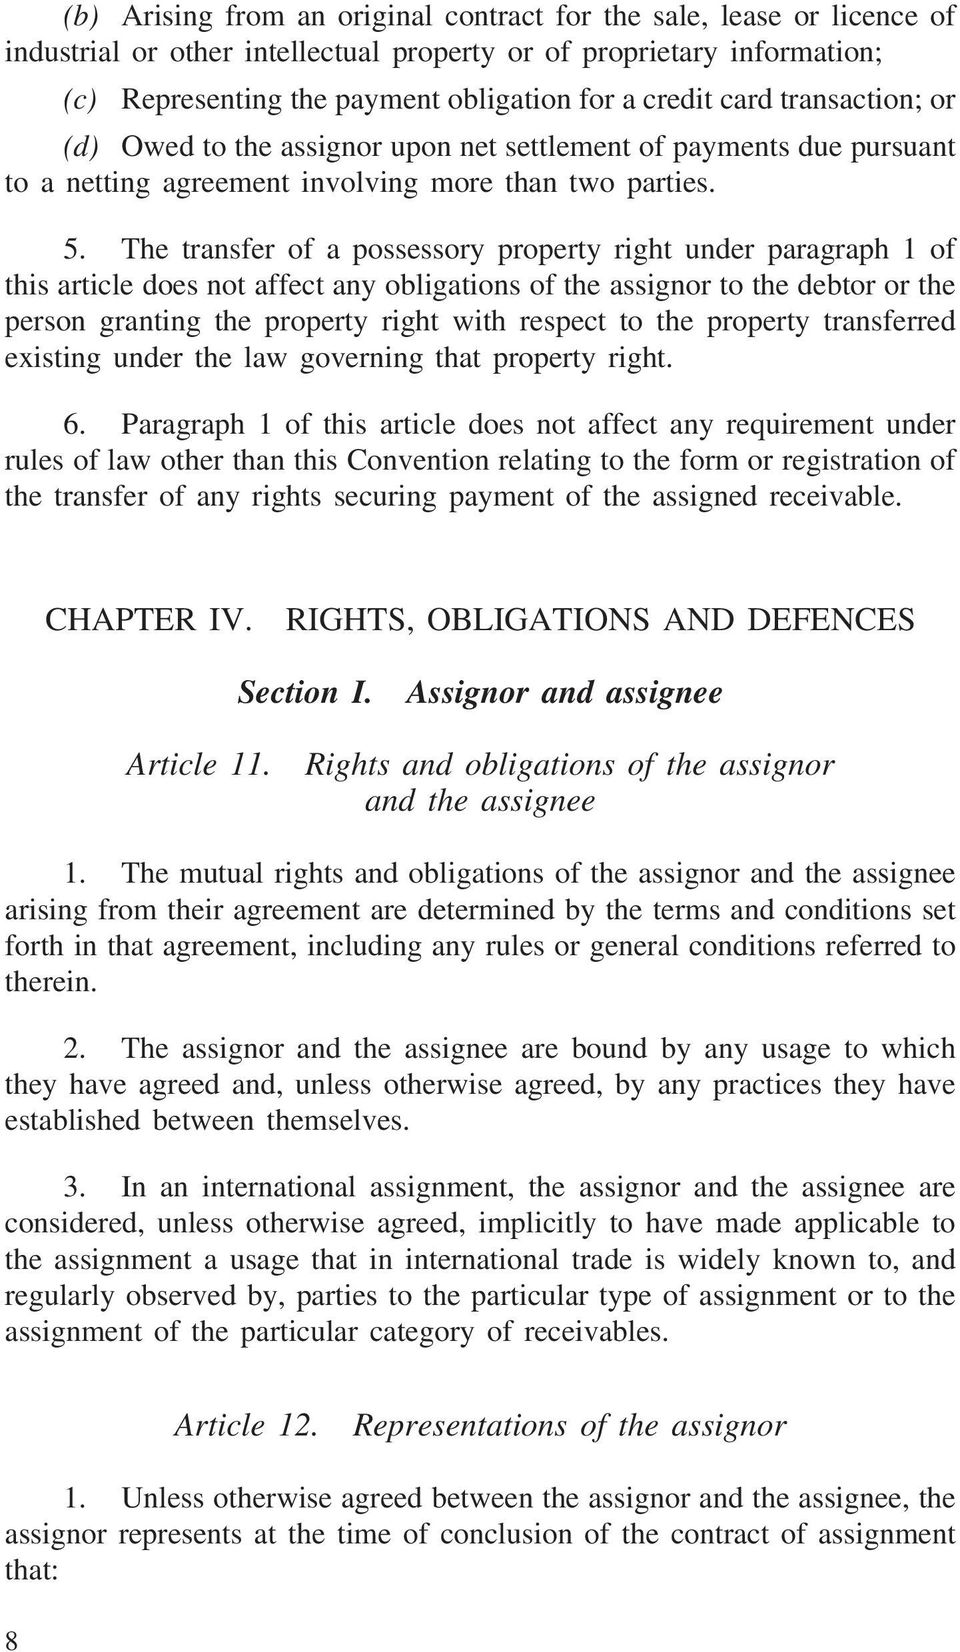 The transfer of a possessory property right under paragraph 1 of this article does not affect any obligations of the assignor to the debtor or the person granting the property right with respect to